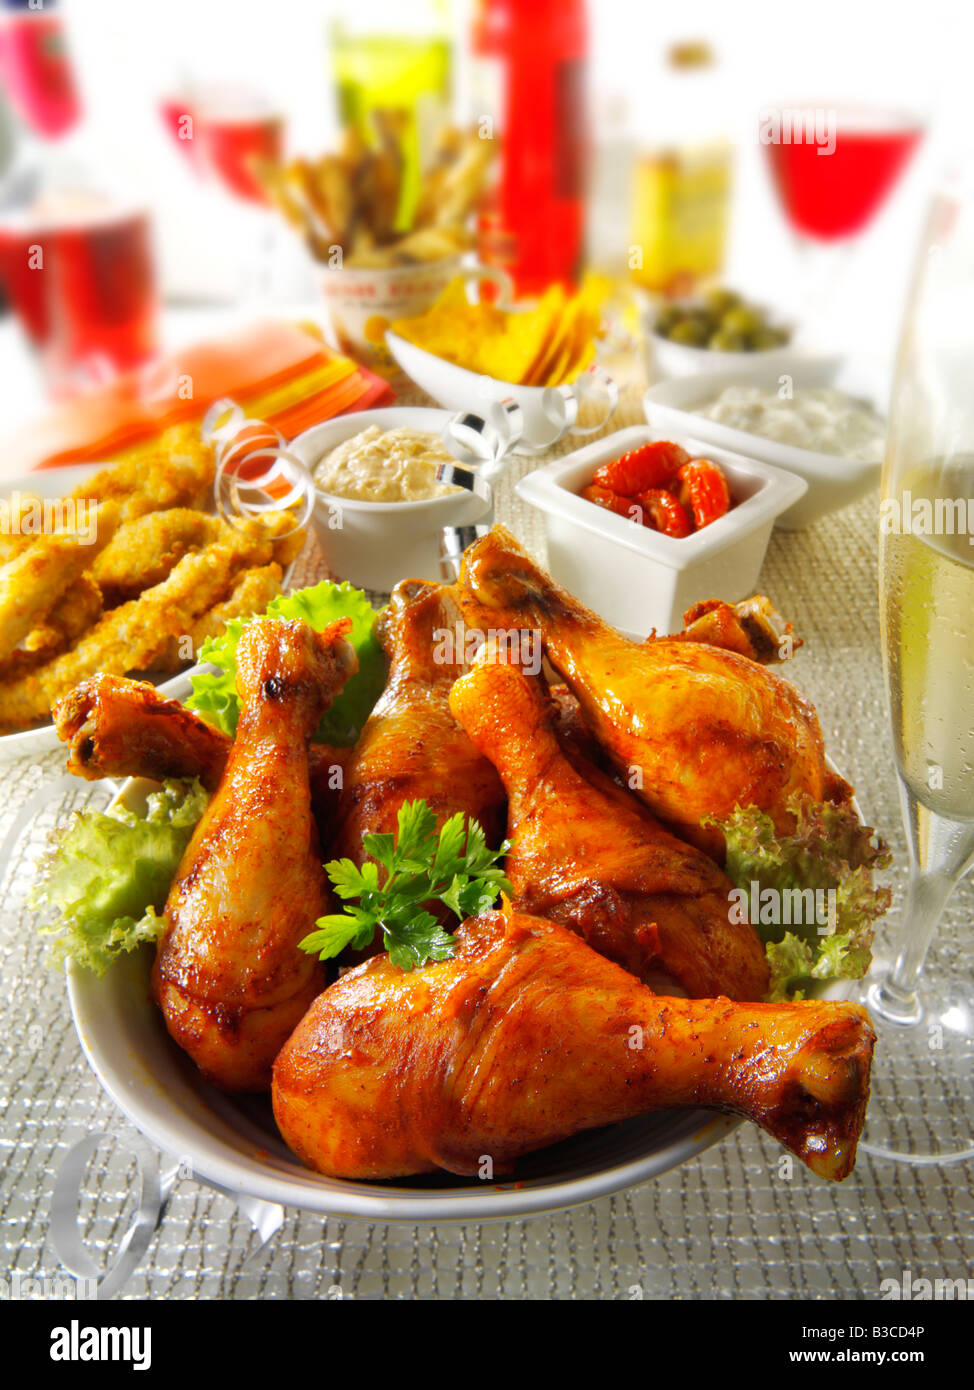 party food setting with chicken drumsticks, goujons  and sun dried tomatoes dip - Stock Image